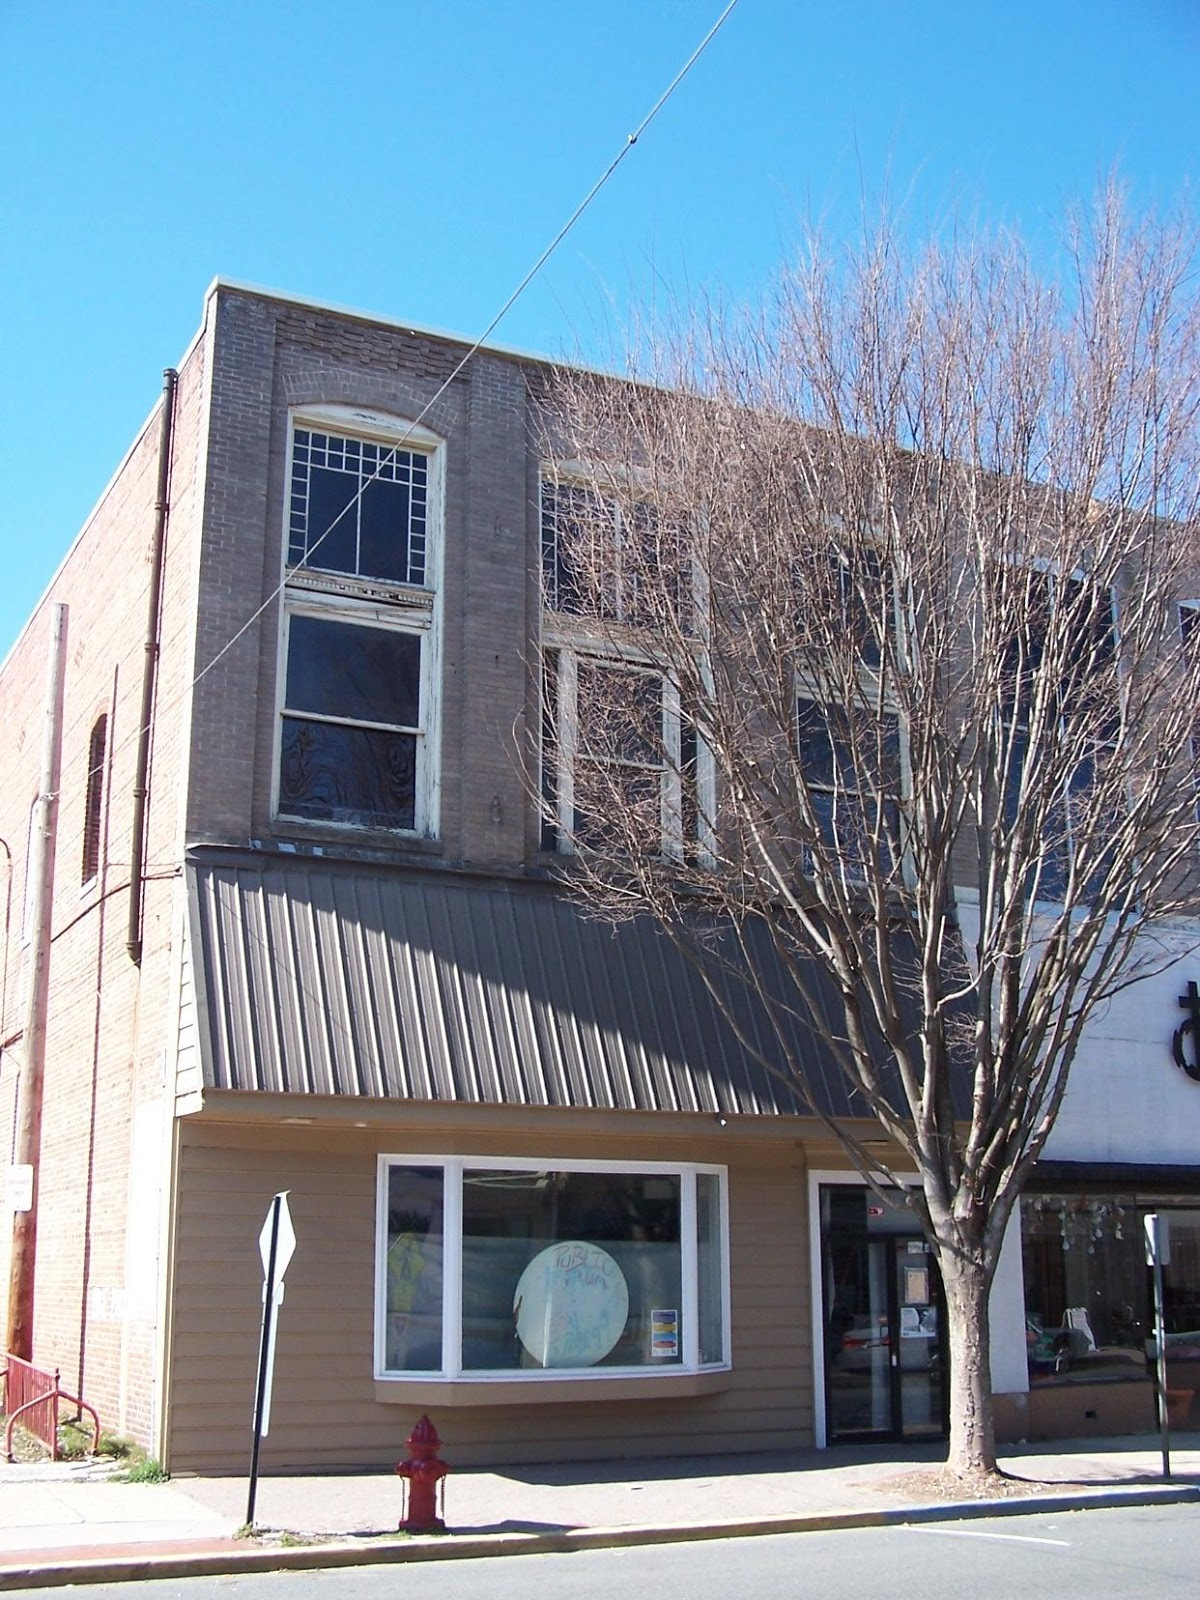 Stevens Smith & Co. Building – Race Street, Dorchester County